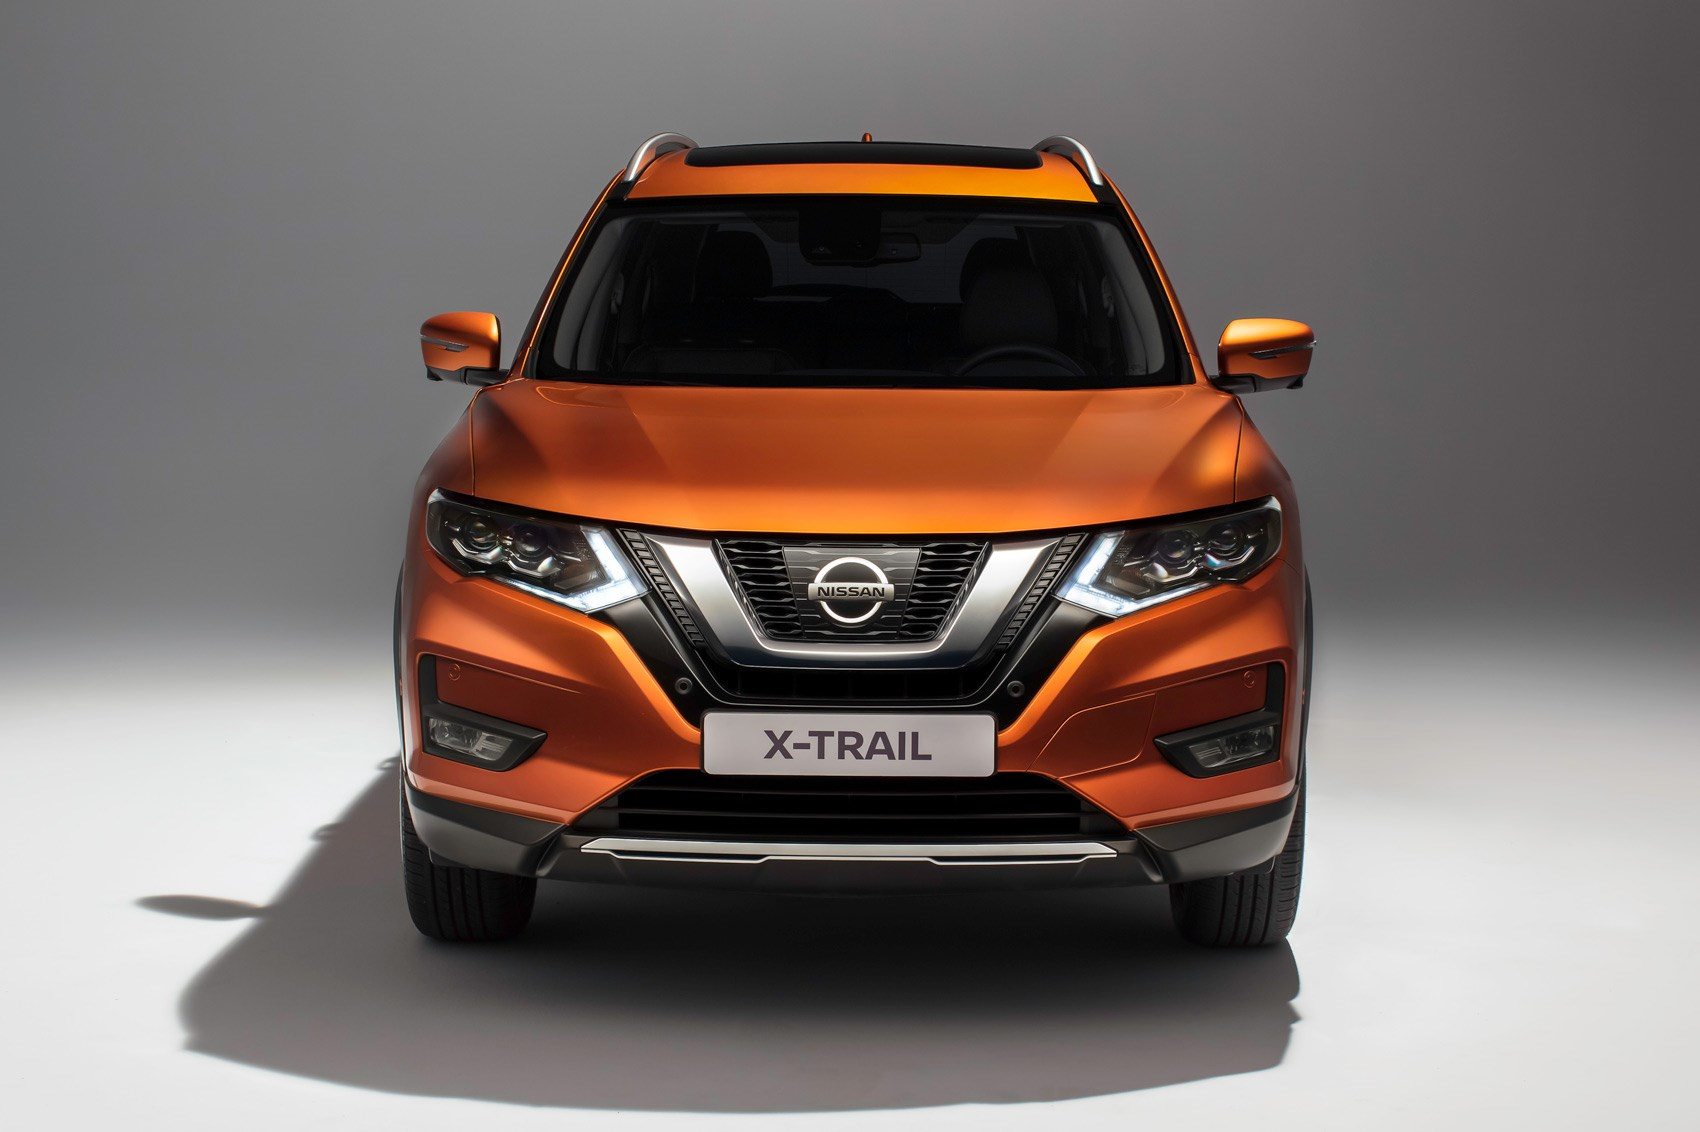 Nissan X-Trail (2017) facelift: pictures, specs and ...